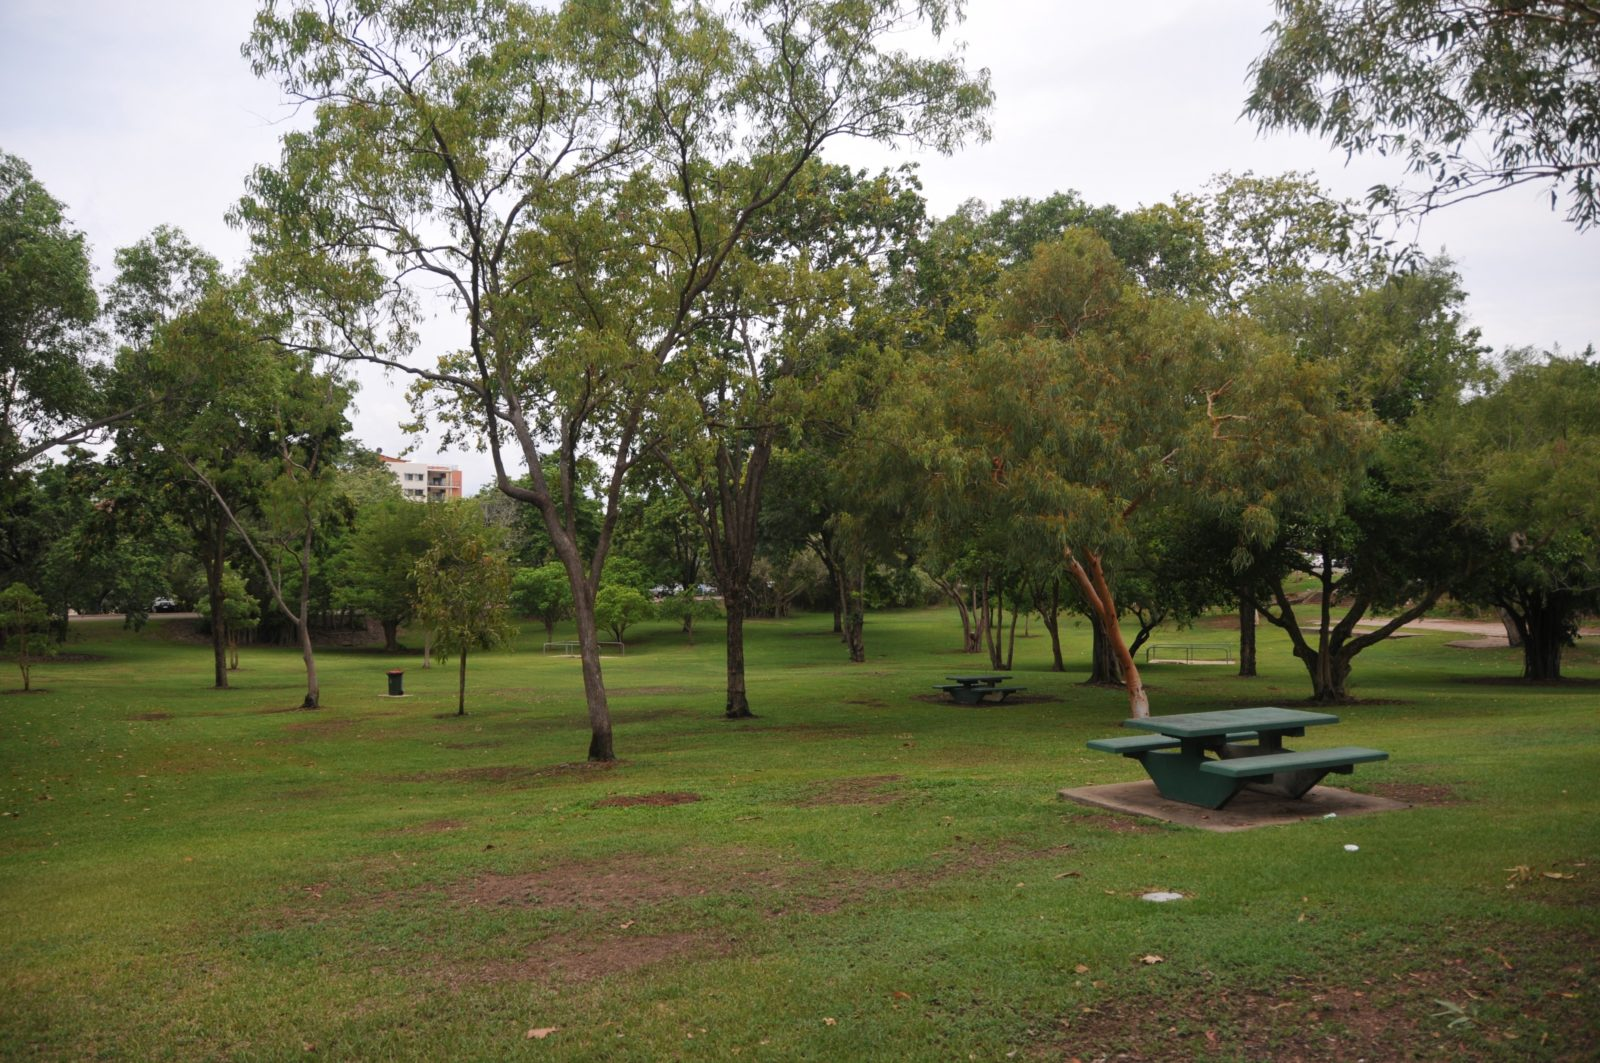 Frog Hollow – mature trees on the site. The landscape is well maintained